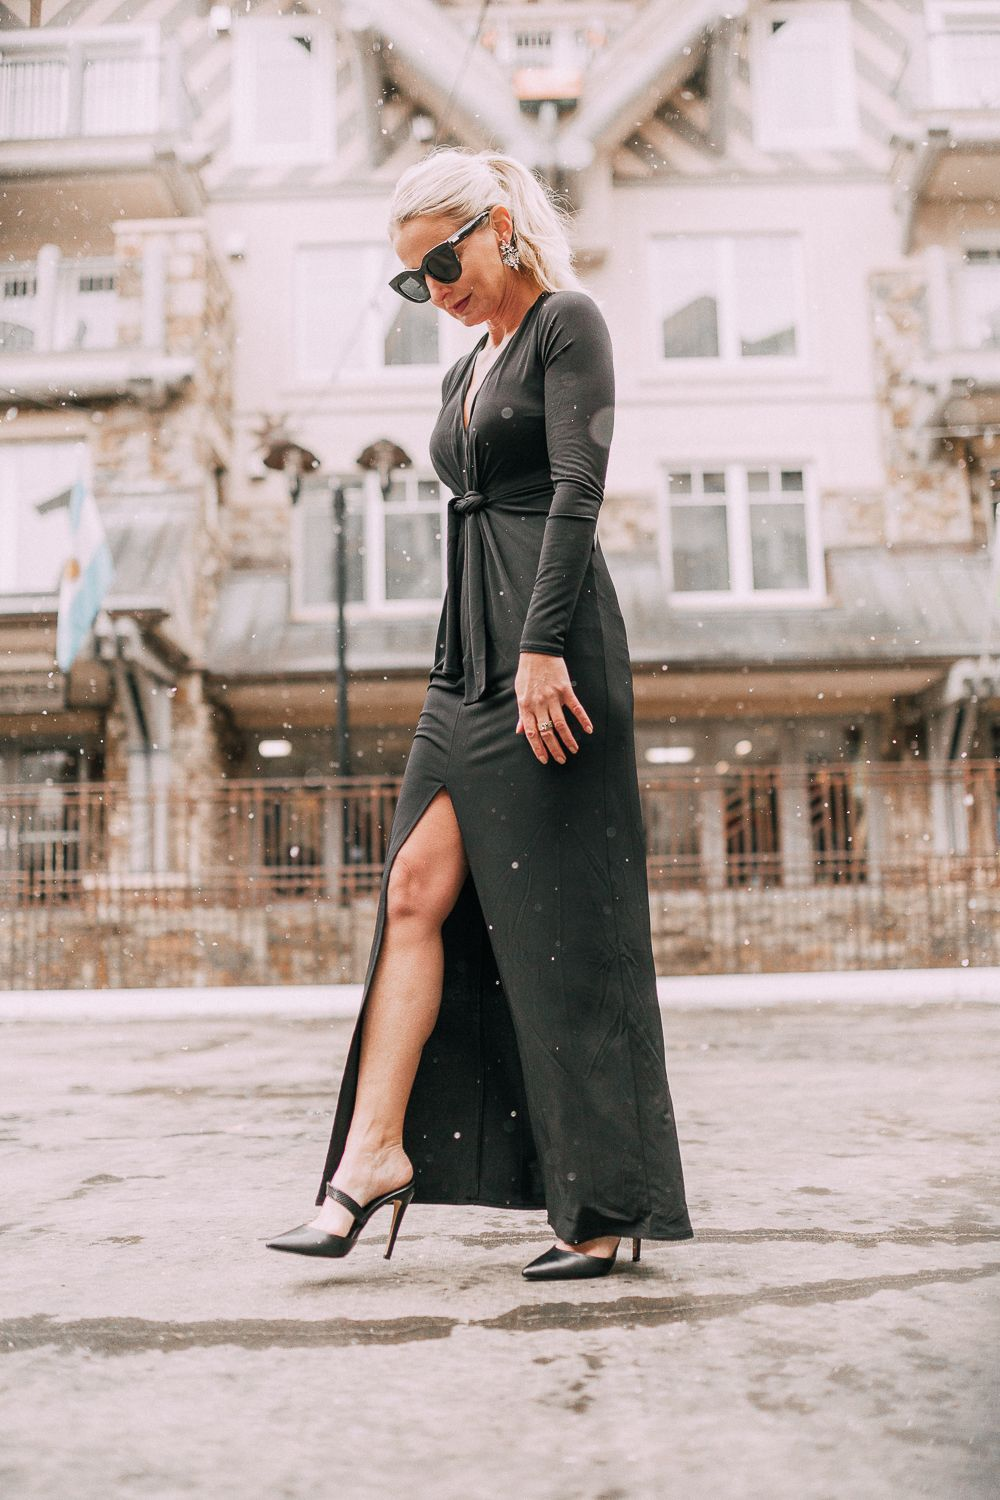 f558a1631713 Unexpected holiday party outfits featuring a long black maxi dress with high  slit to show off